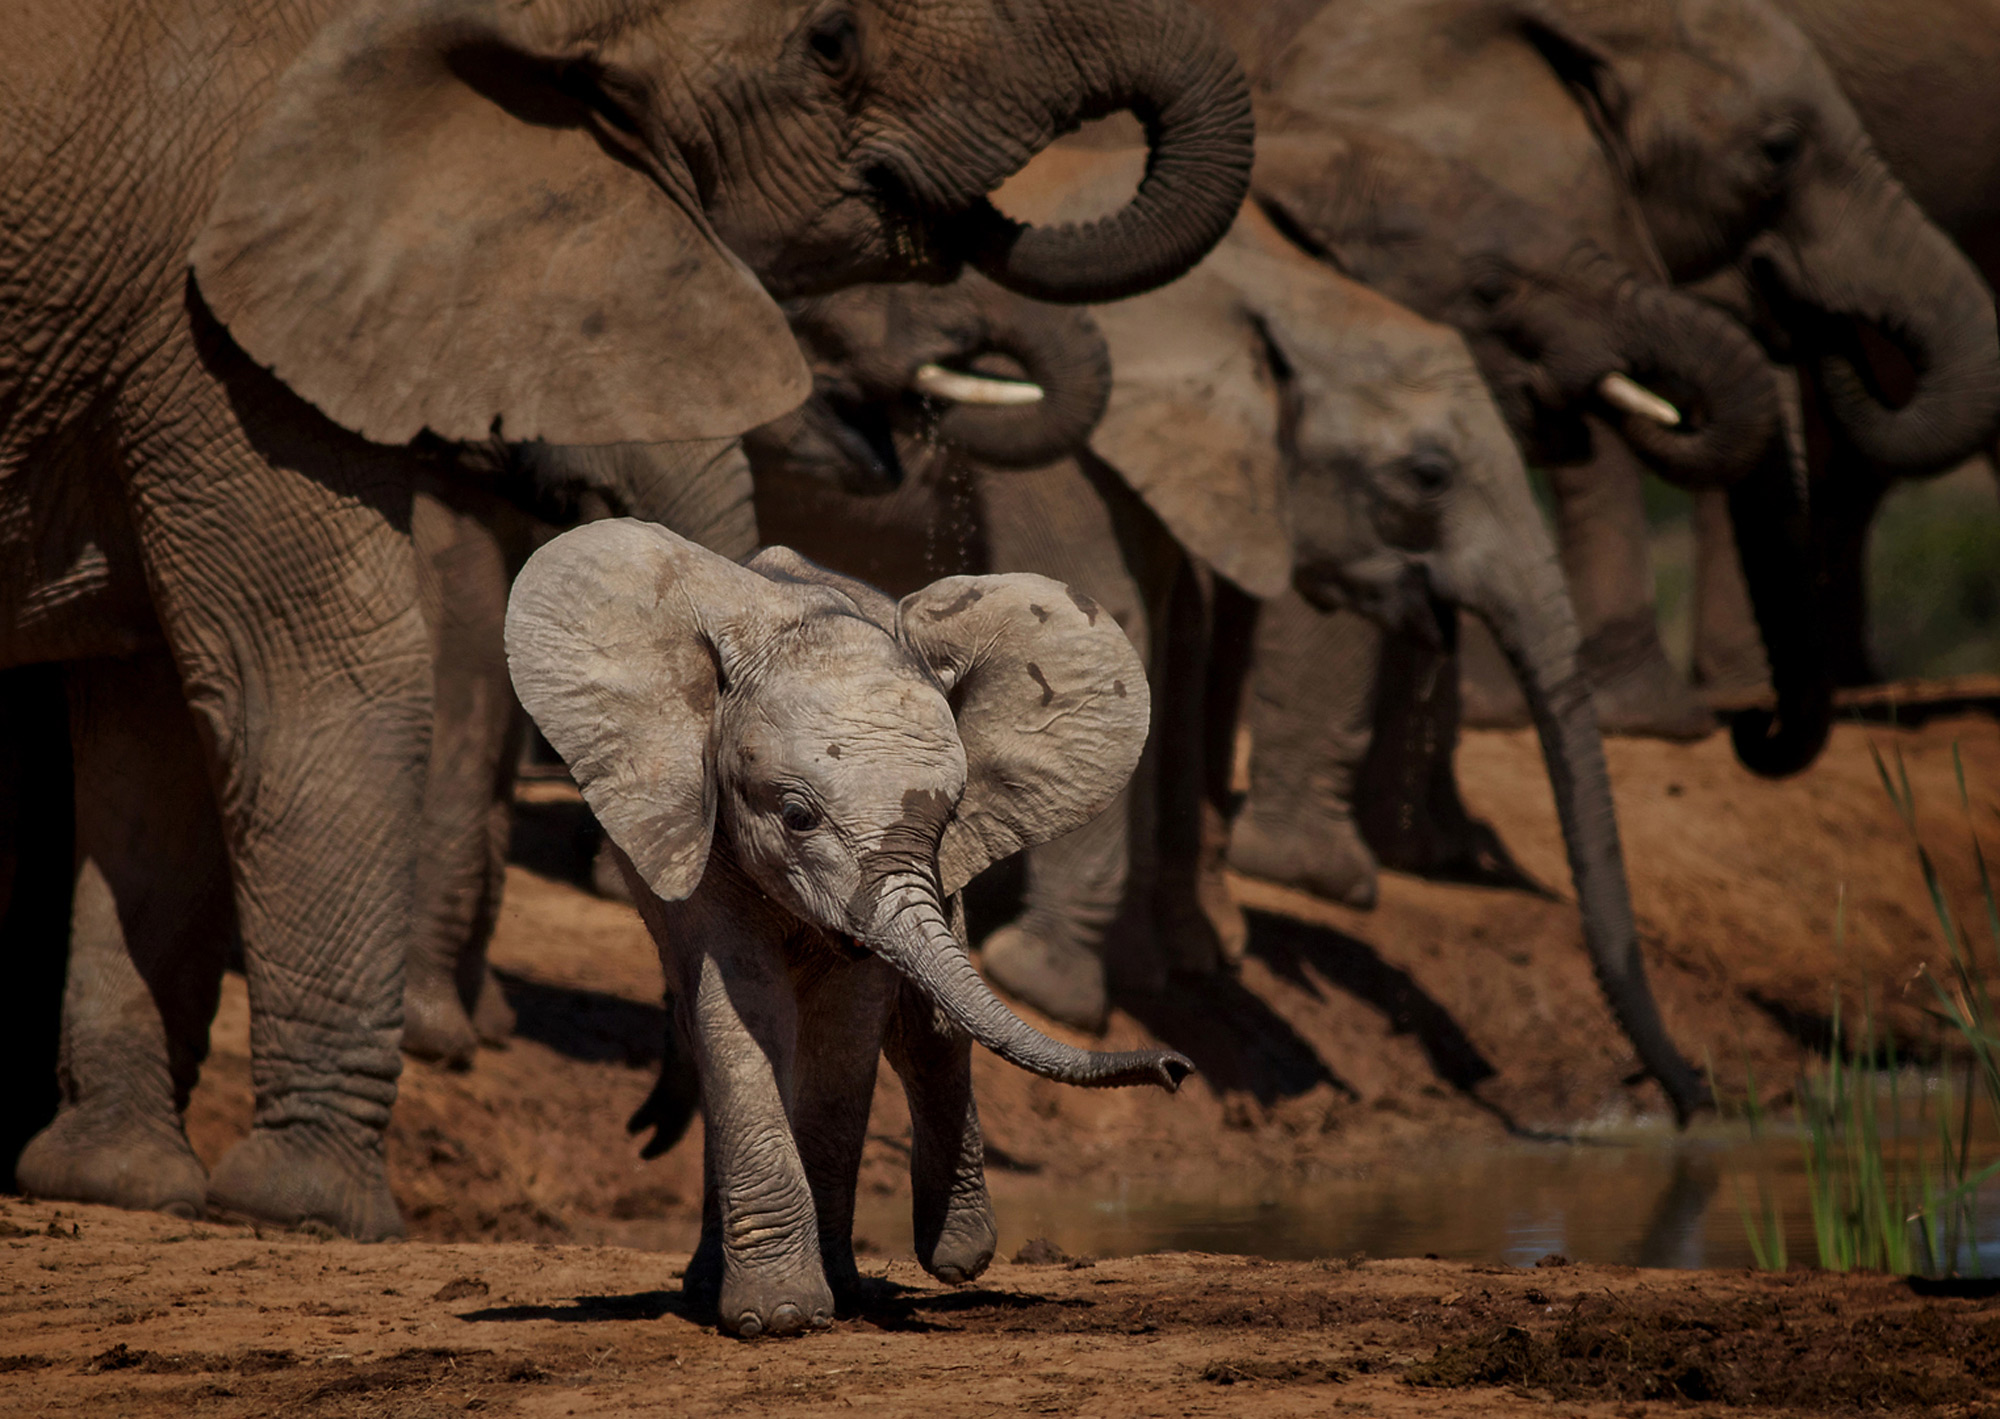 A young, playful elephant runs around the waterhole at Addo Elephant National Park, South Africa